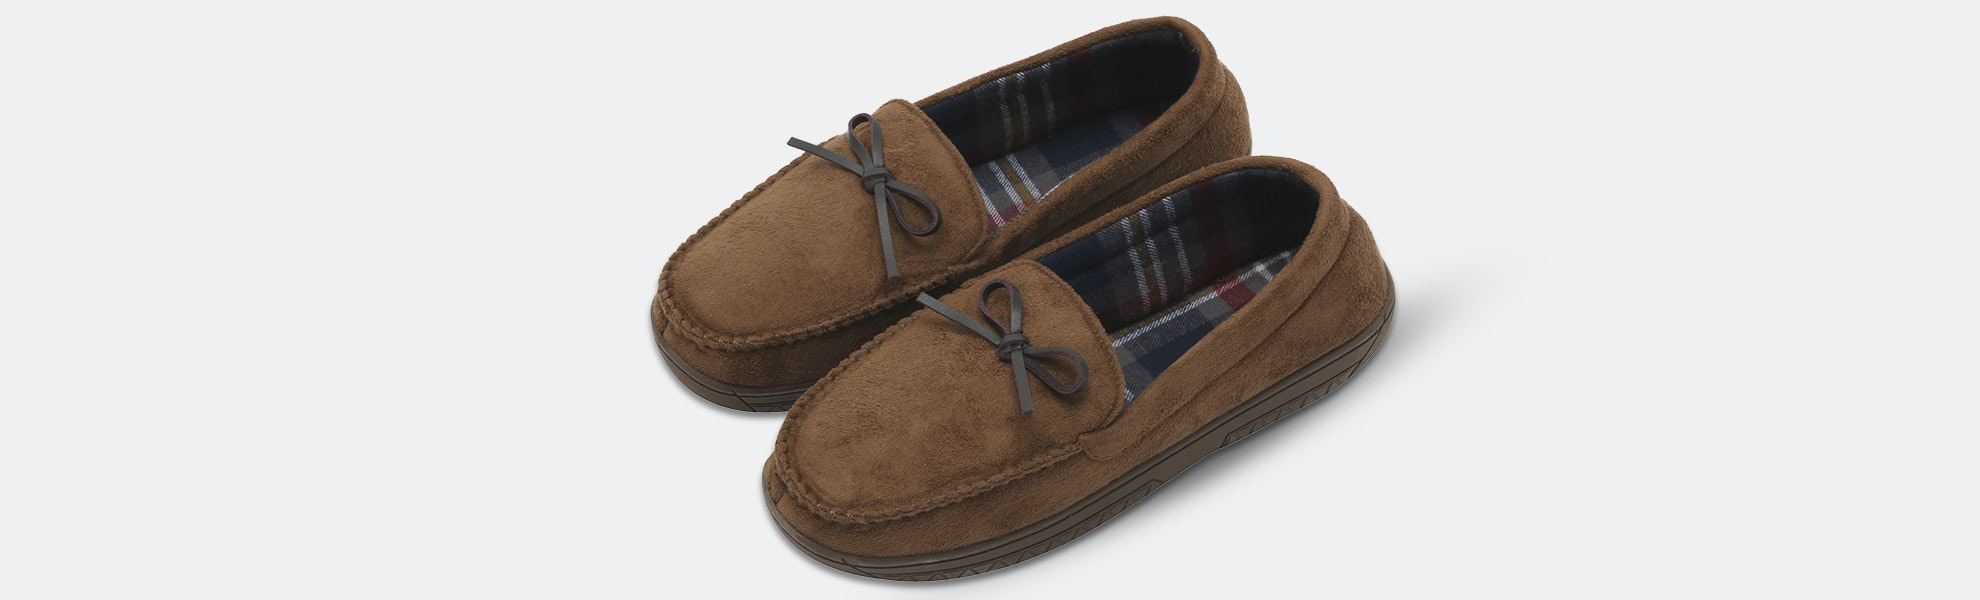 Jachs NY The Craftsman Moccasin Slippers